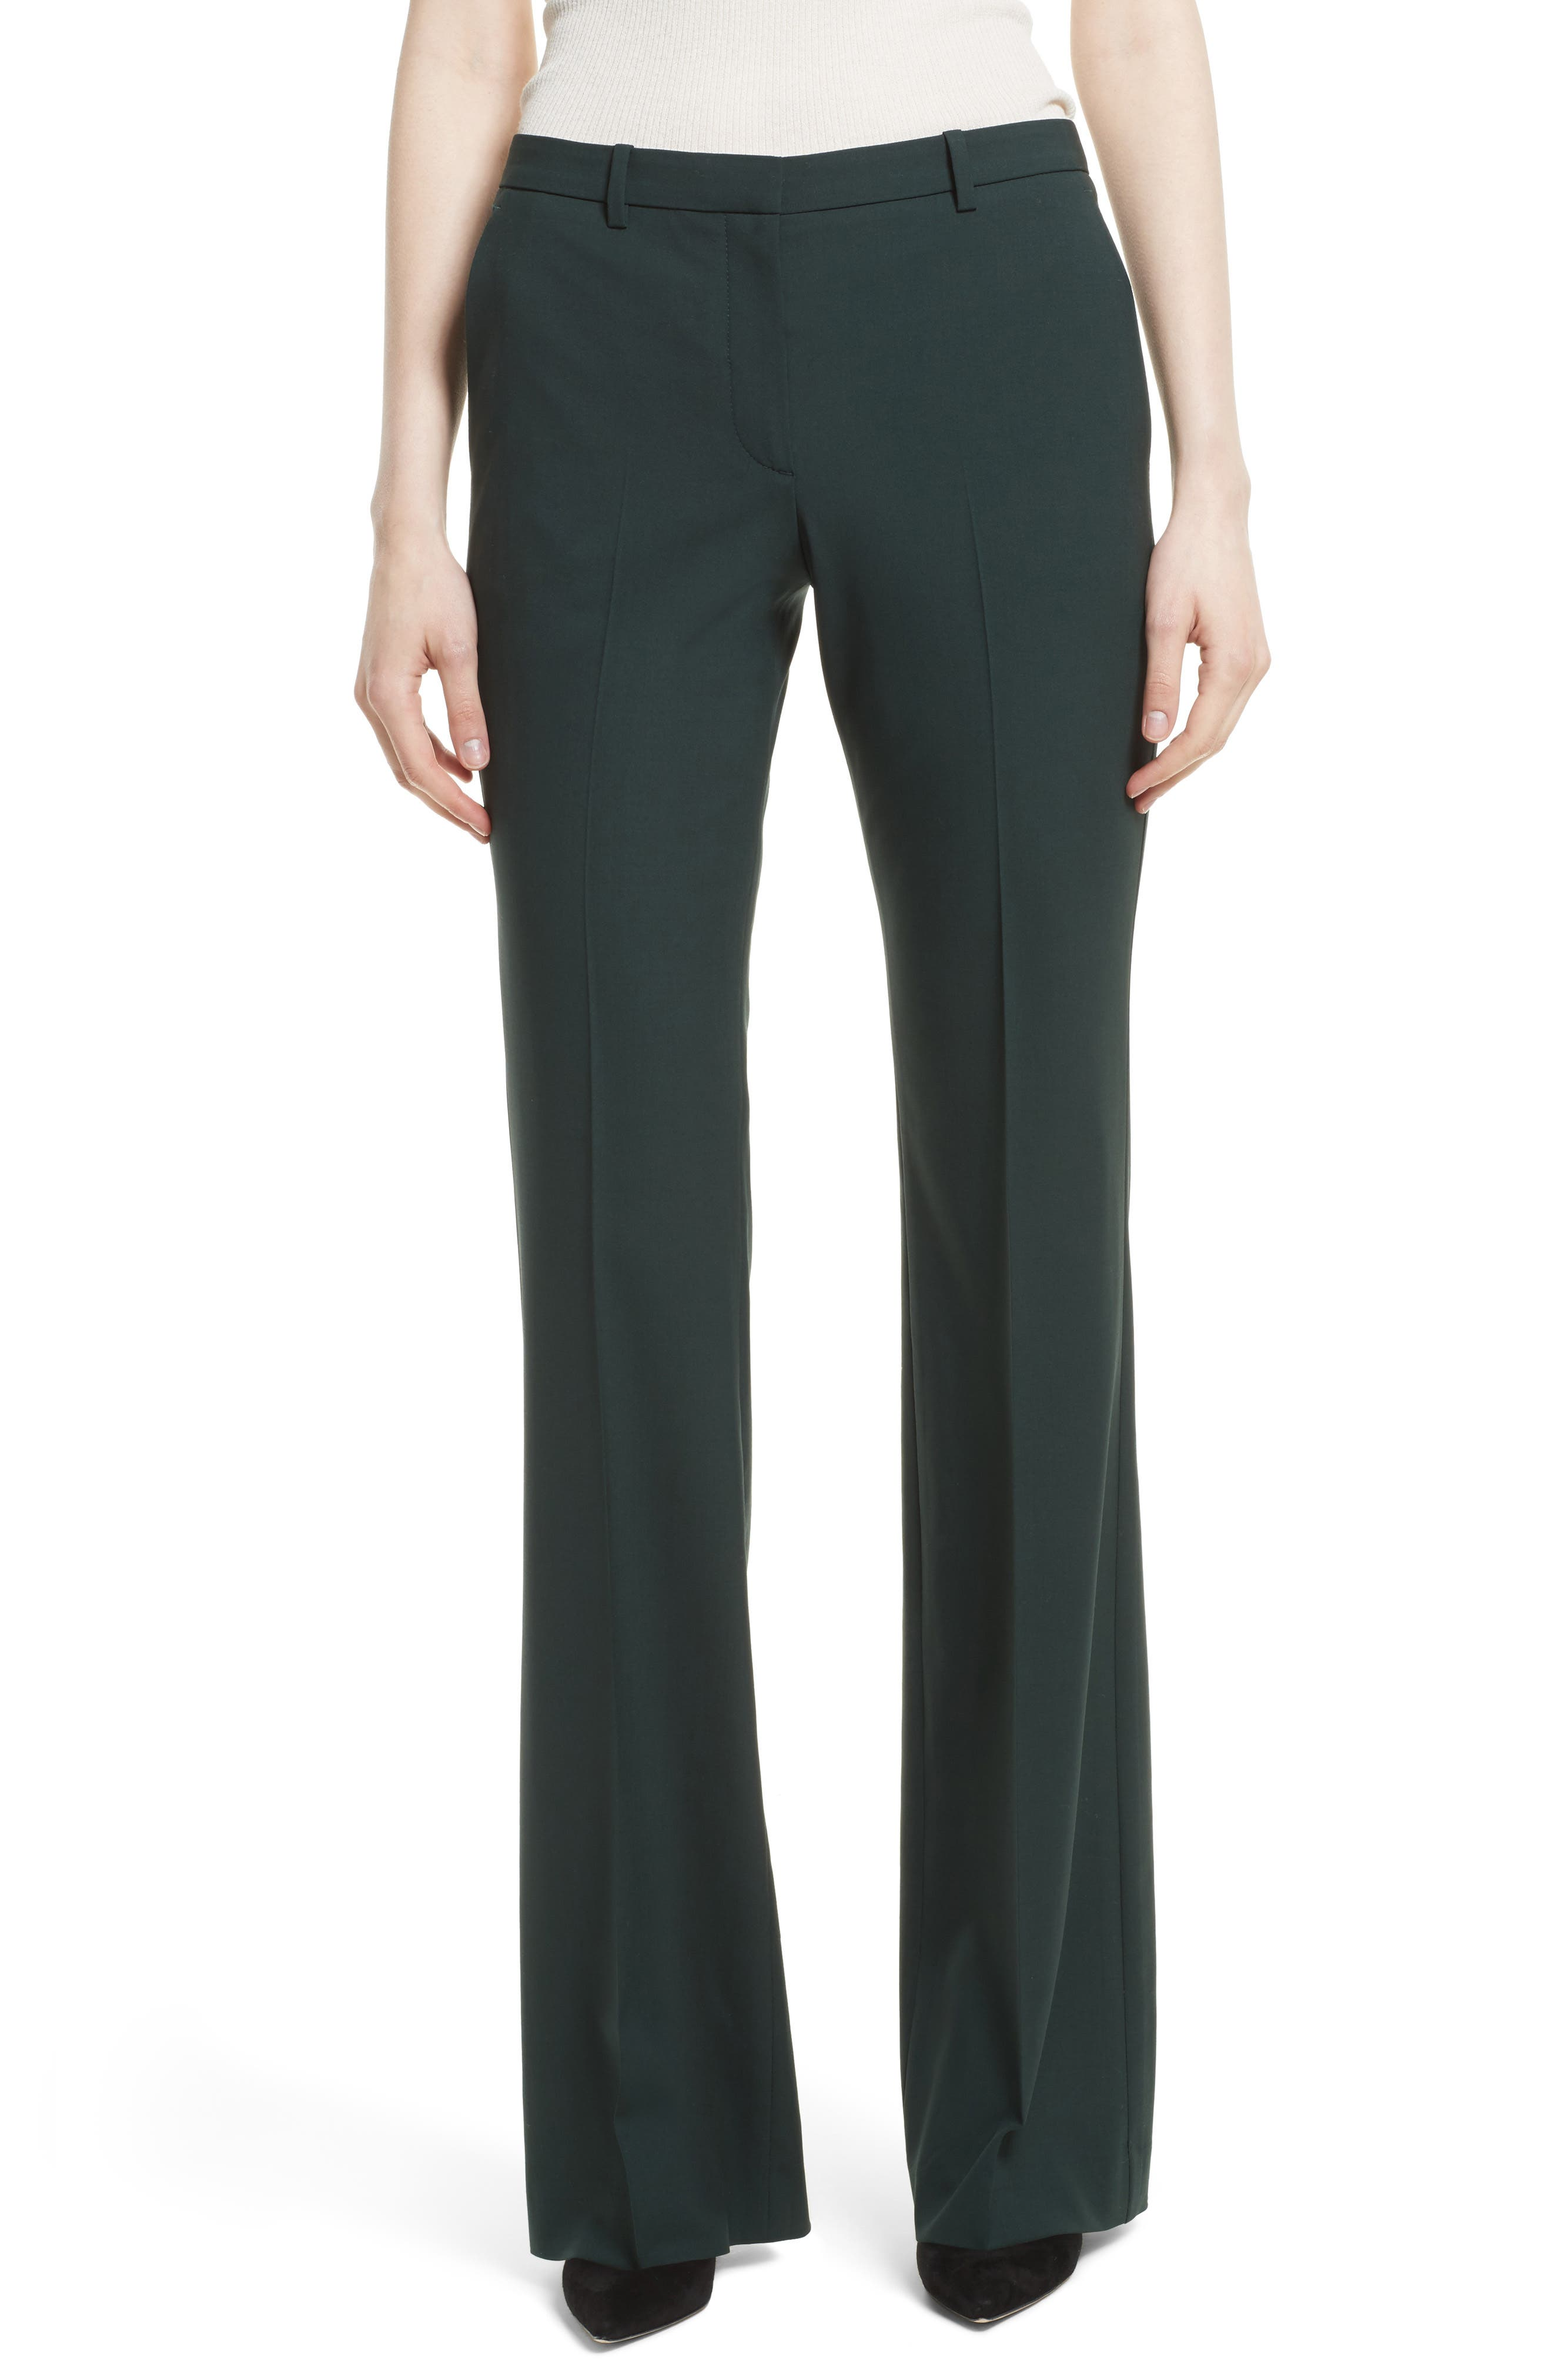 Demitria 2 Flare Leg Stretch Wool Pants,                         Main,                         color, 392